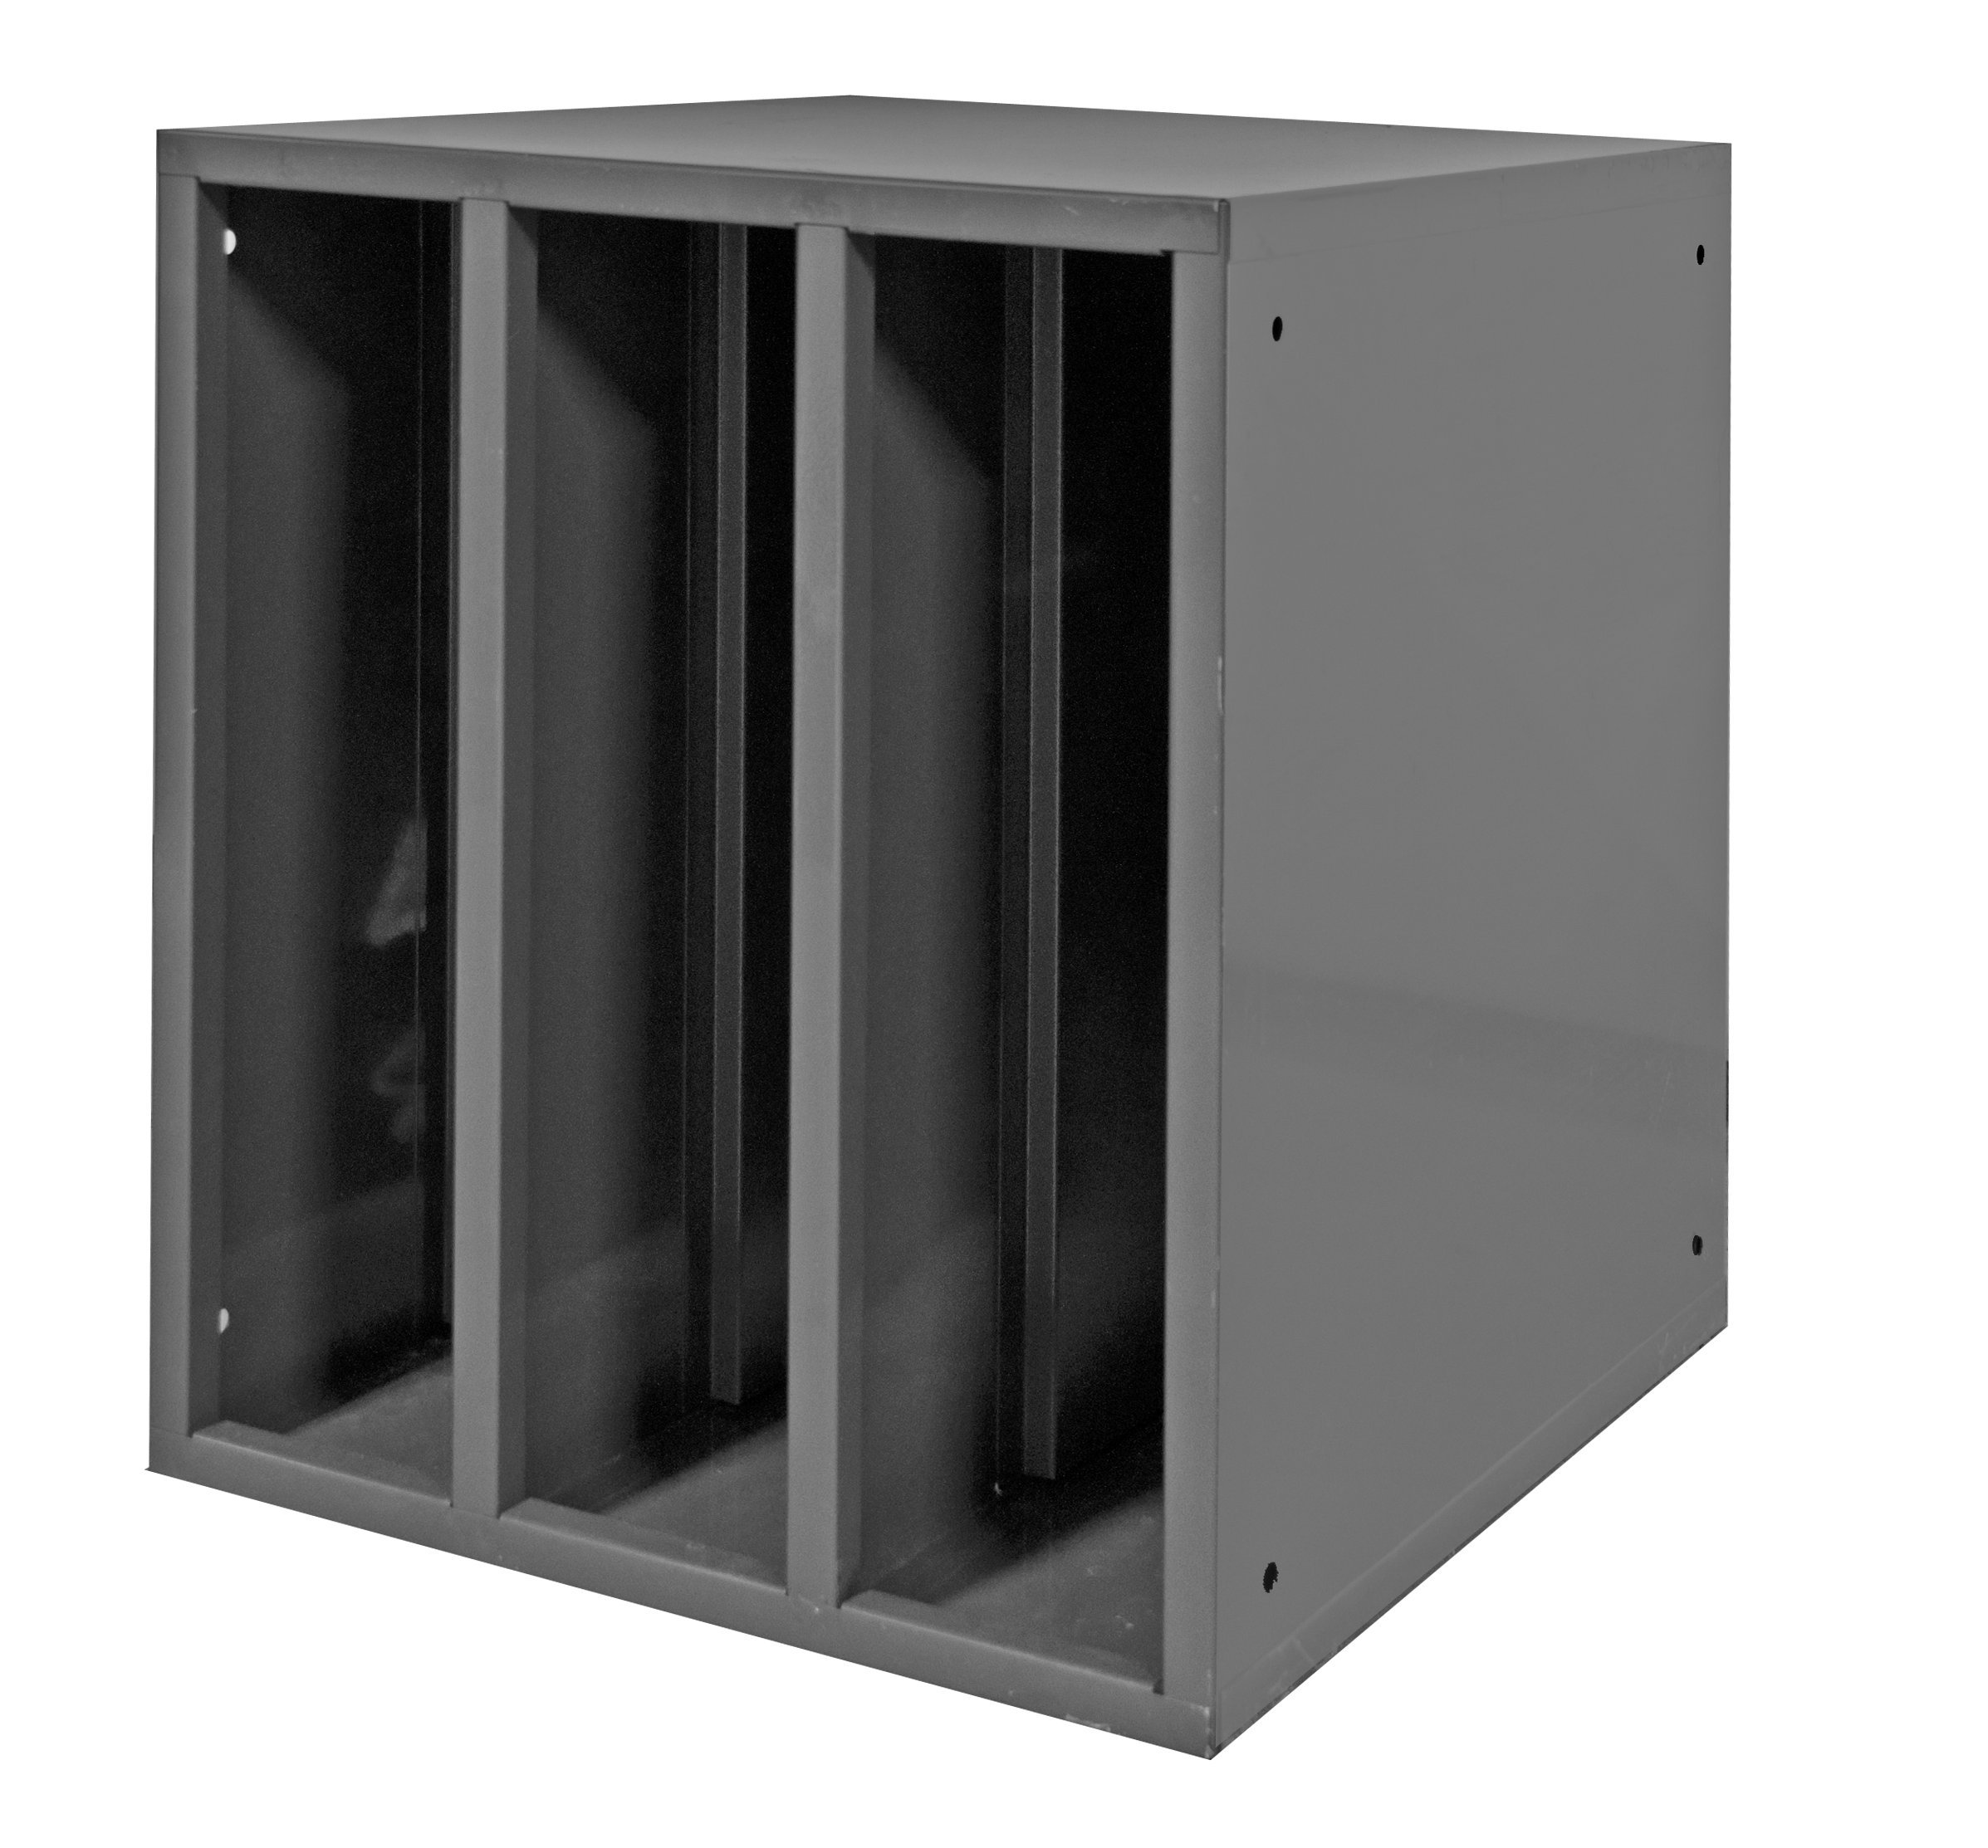 Durham 583-95 Heavy Duty Cold Rolled Steel Hydraulic Hose Cabinet with 2 Dividers, 24-1/8'' Length x 21-9/16'' Width x 24'' Height, Gray Powder Coat Finish